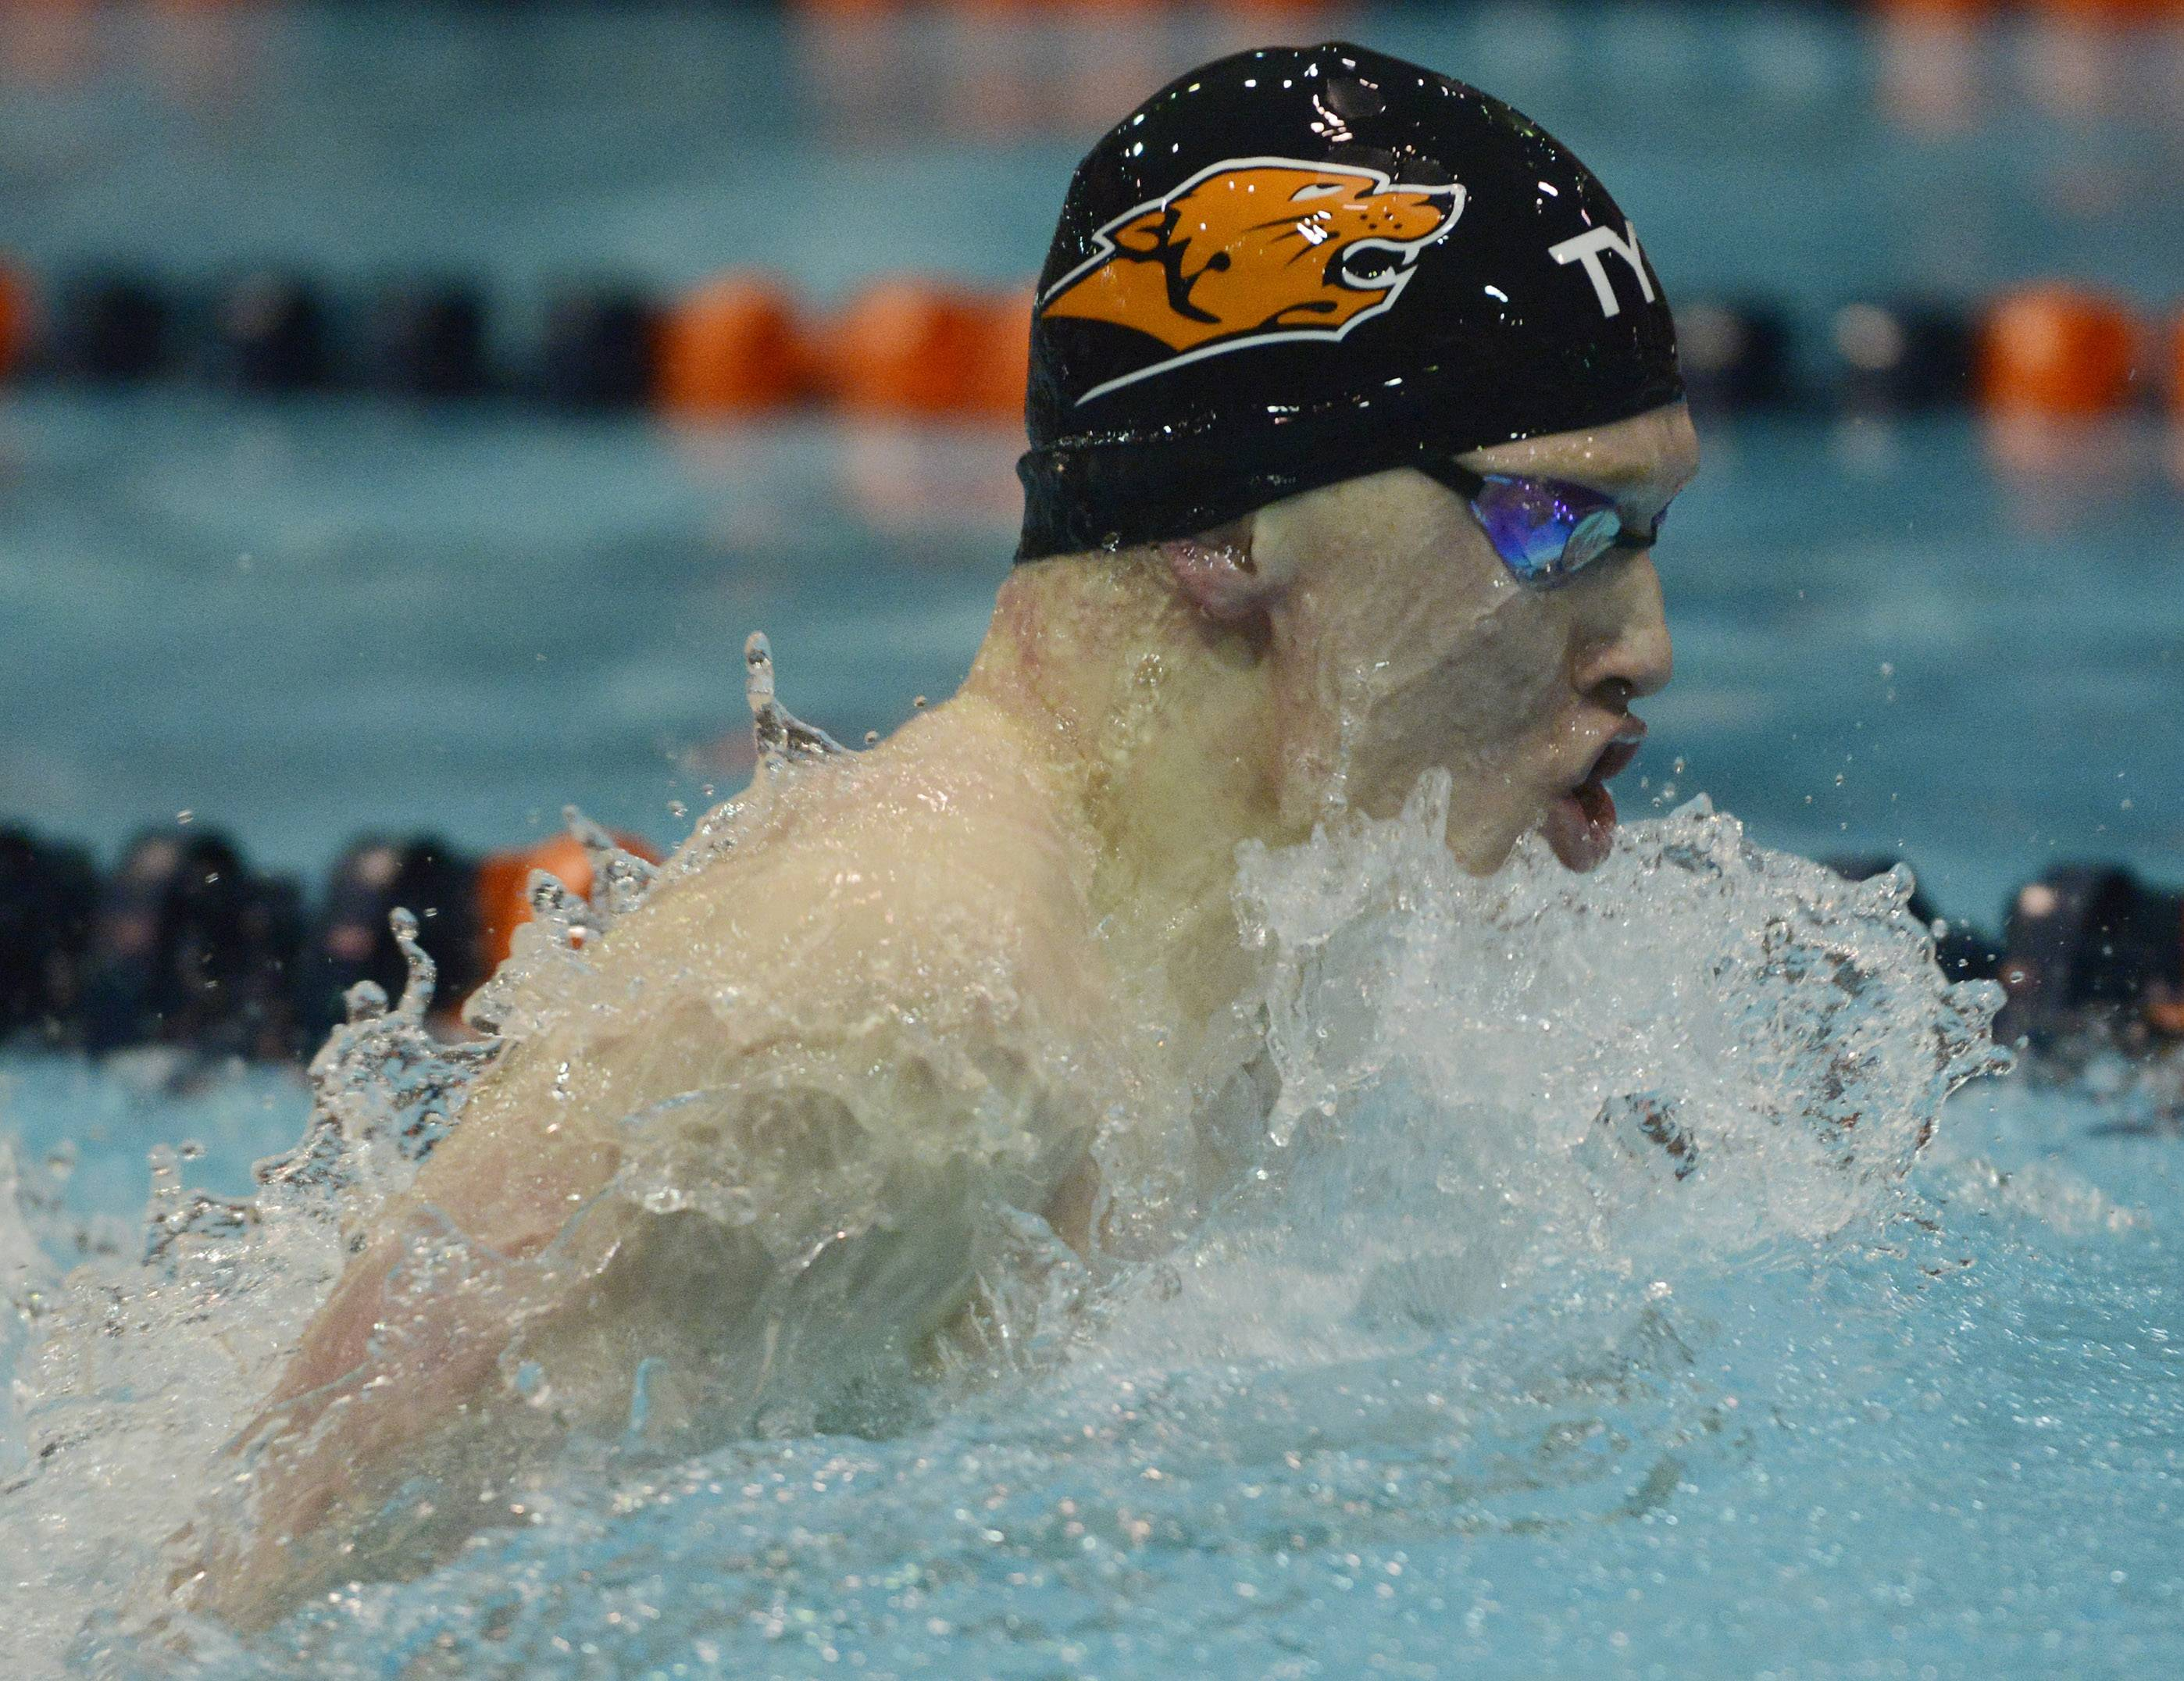 Joe Lewnard/jlewnard@dailyherald.comLibertyville's Bobby Snader swims the breaststroke leg of the state record-setting 200-yard medley relay during the boys swimming state meet finals at Evanston High School on Saturday.